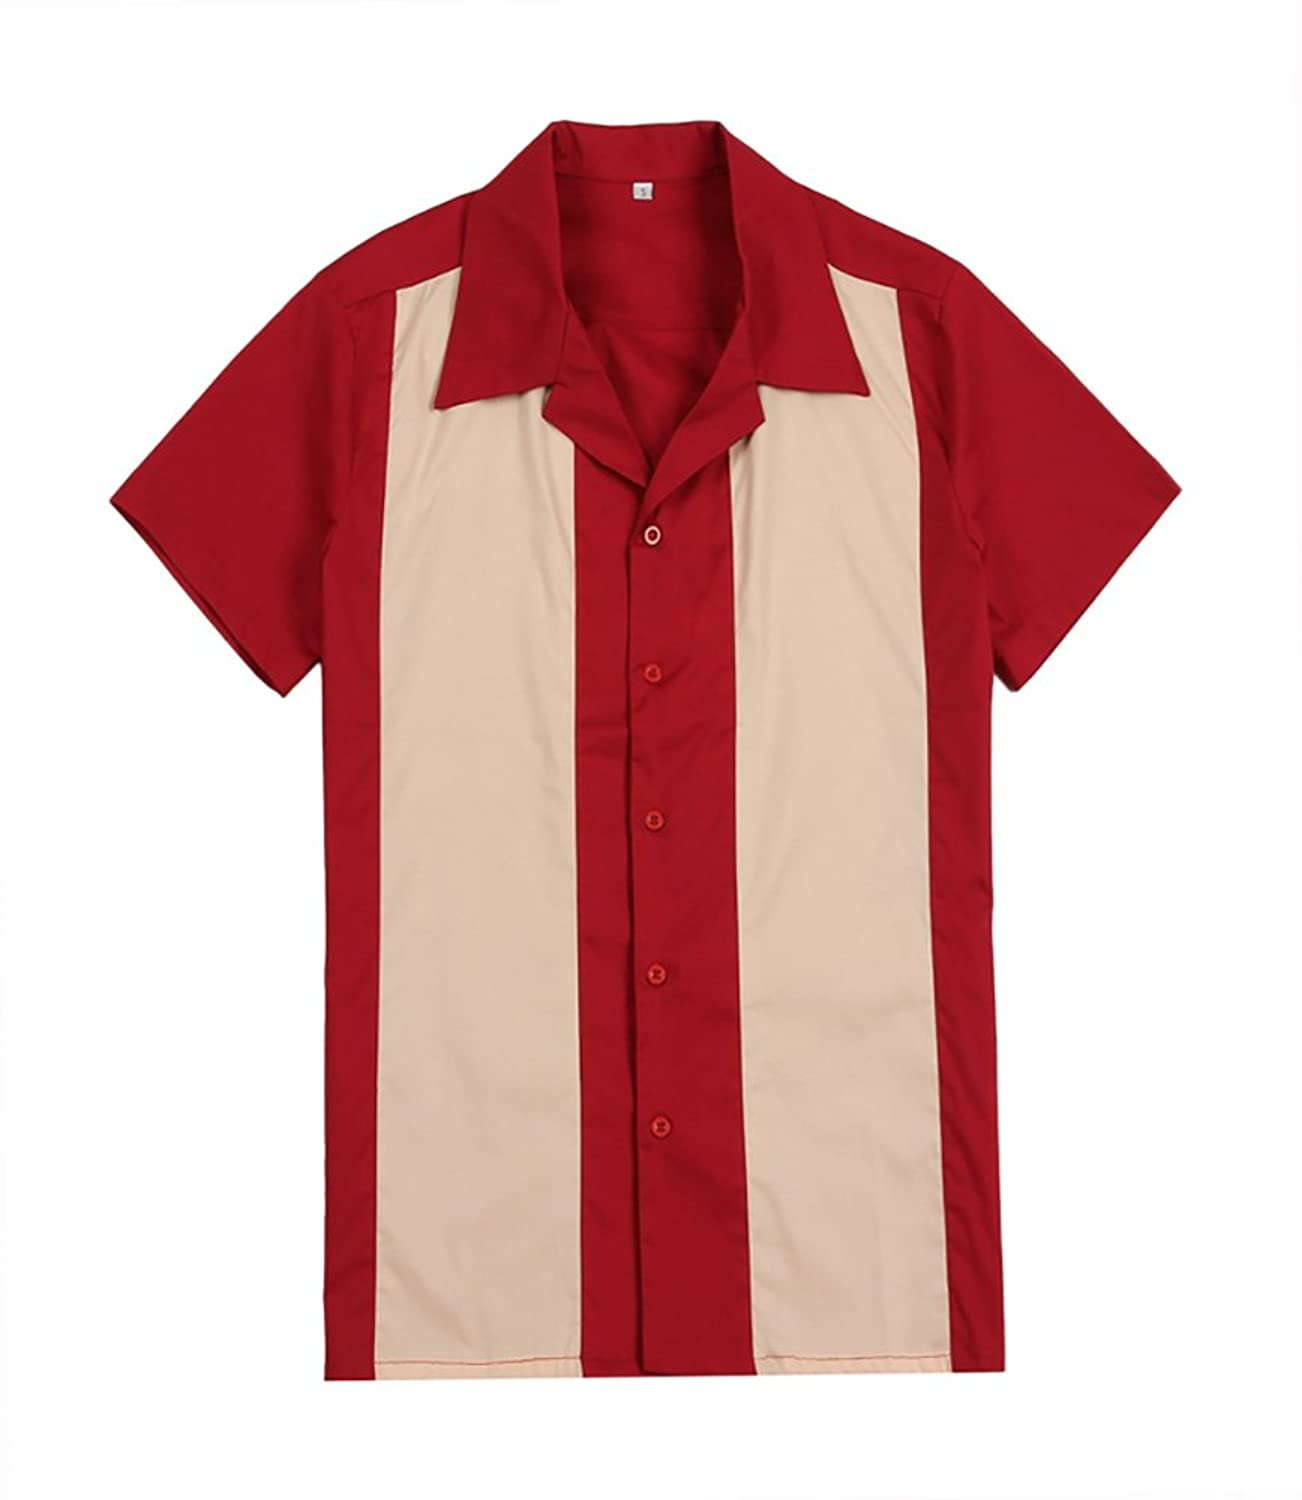 Mens Vintage Shirts – Casual, Dress, T-shirts, Polos Mens Rockabilly Vintage 50s Clothing Short Sleeve Bowling Shirts Red Cream $24.71 AT vintagedancer.com